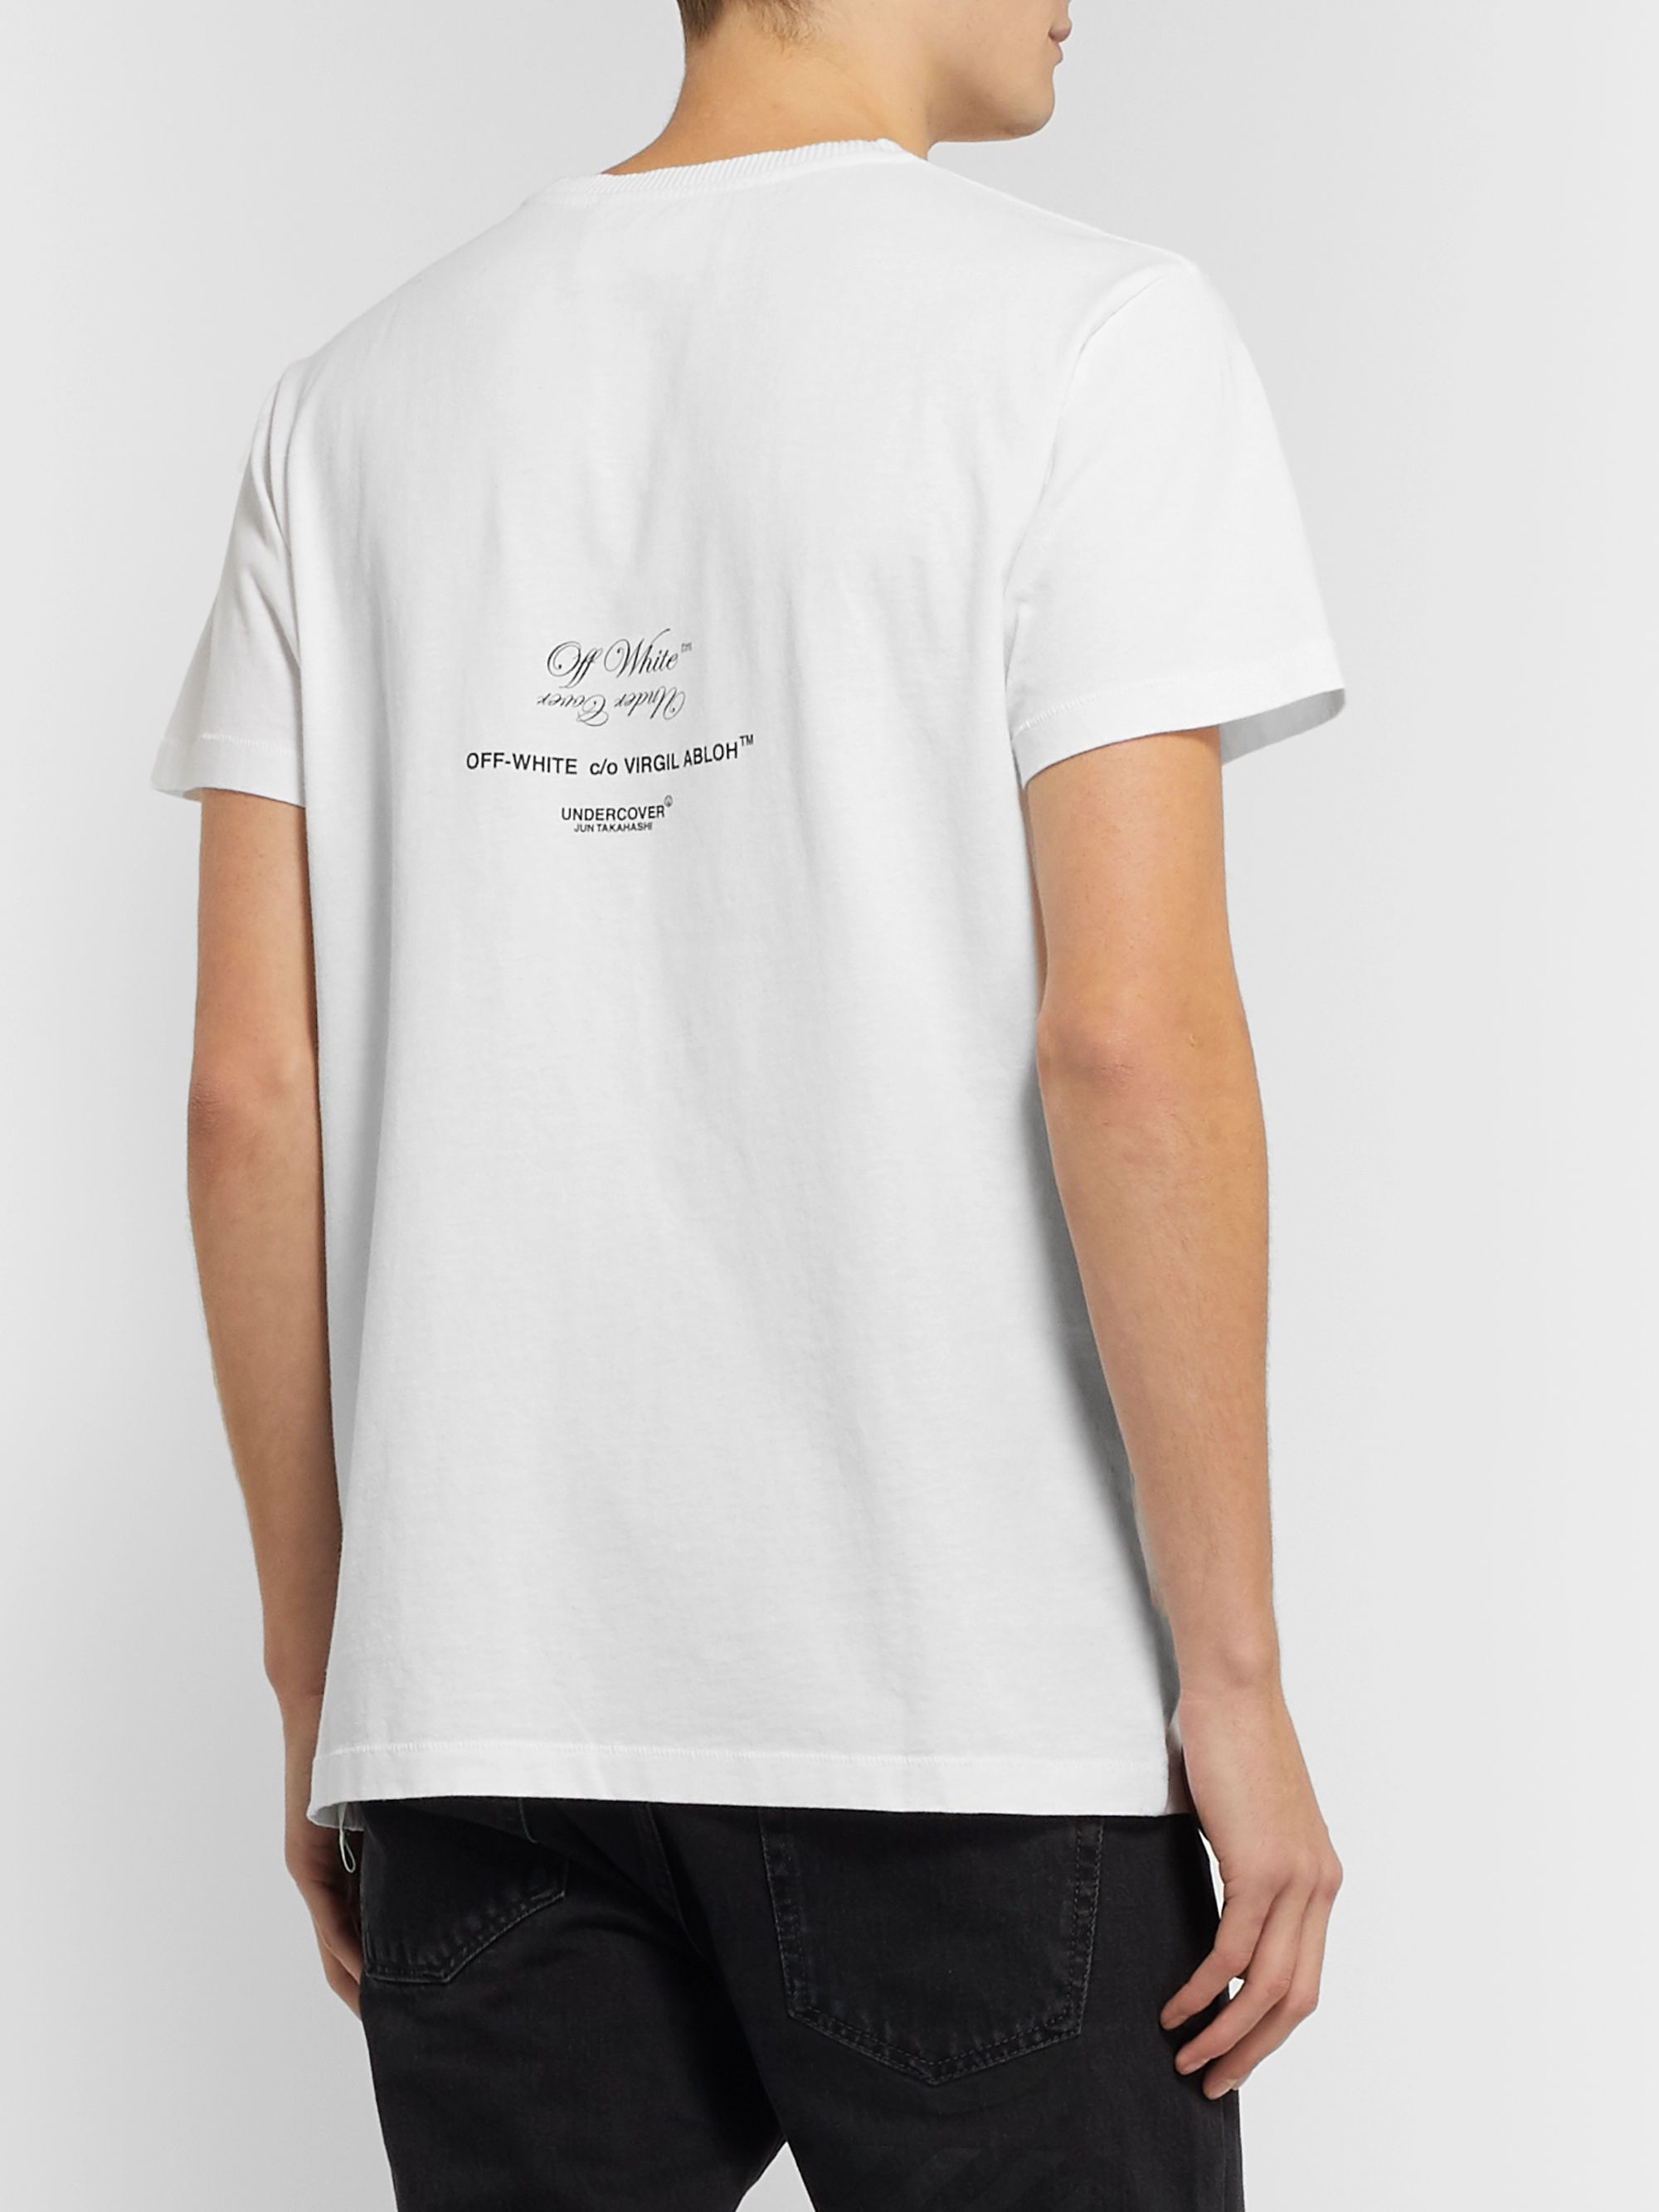 Off-White + Undercover Printed Cotton-Jersey T-Shirt